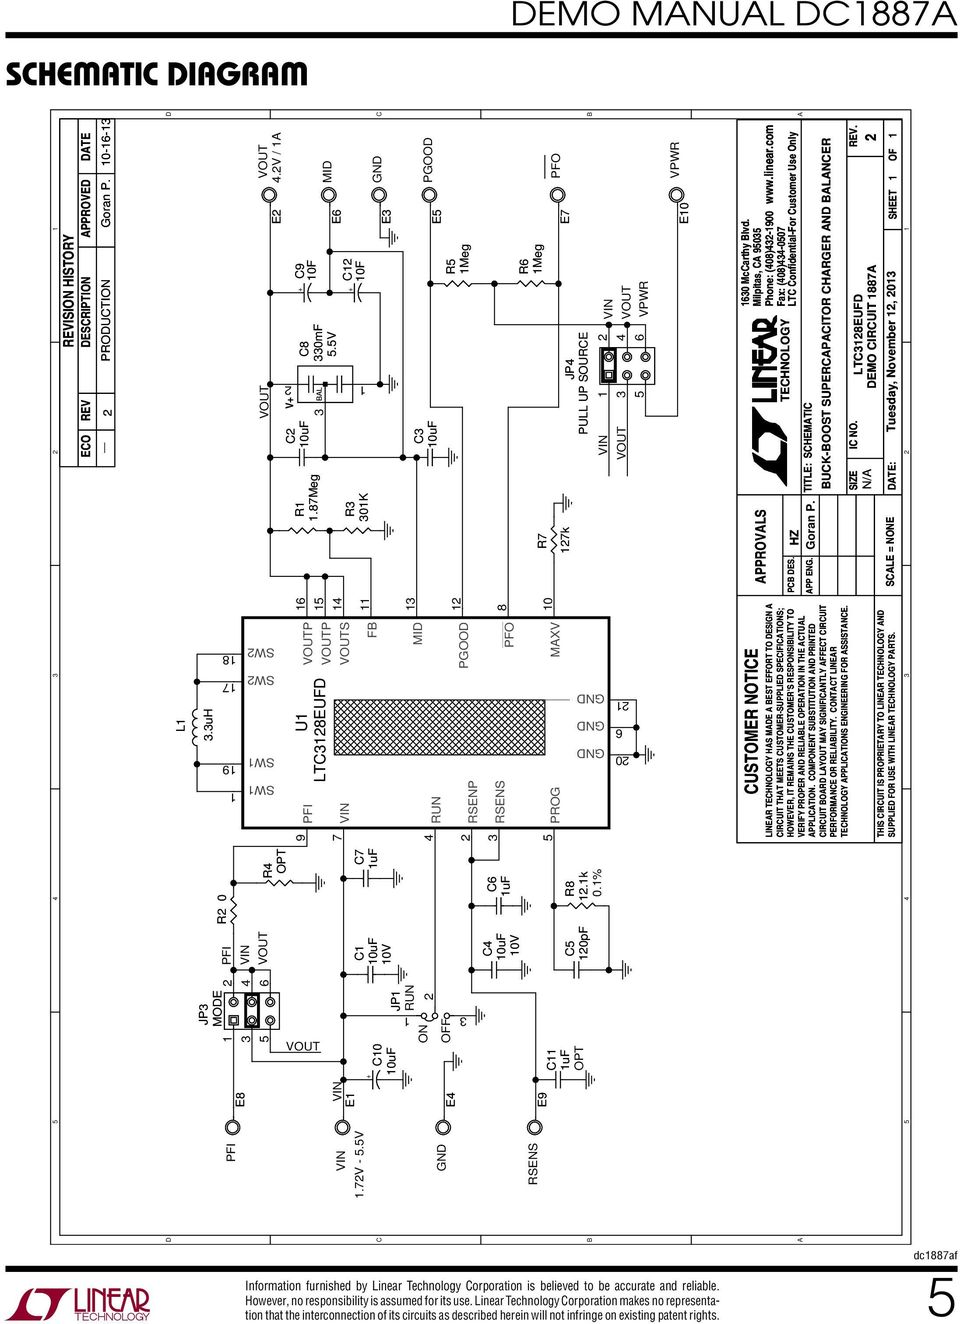 Demo Manual Dc1887a Ltc3128 High Efficiency 2 Cell Supercapacitor Figure 7 A Solar Cellsupercapacitor Charging Circuit With Active 5v C Fb C7 Uf E 0uf 0v Jp C0 Run Pgood